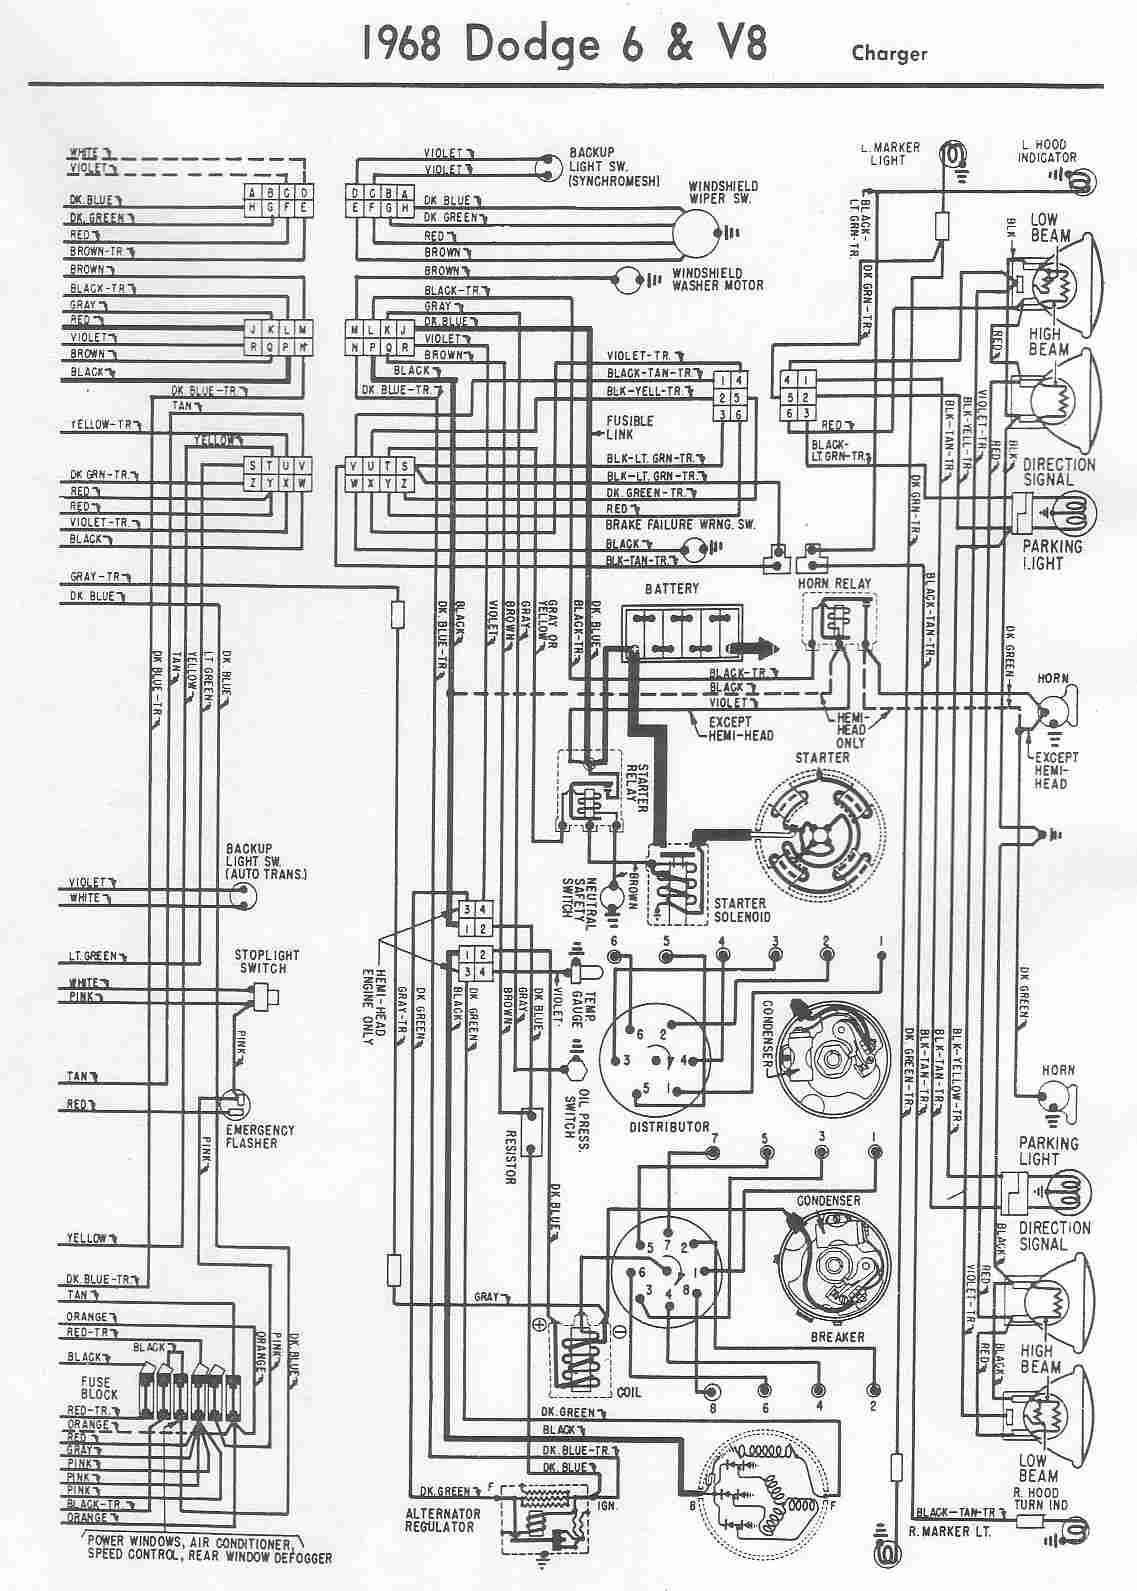 2008 Subaru Tribeca Wiring Diagram Library Diagrams Fuse Box For Mitsubishi Eclipse